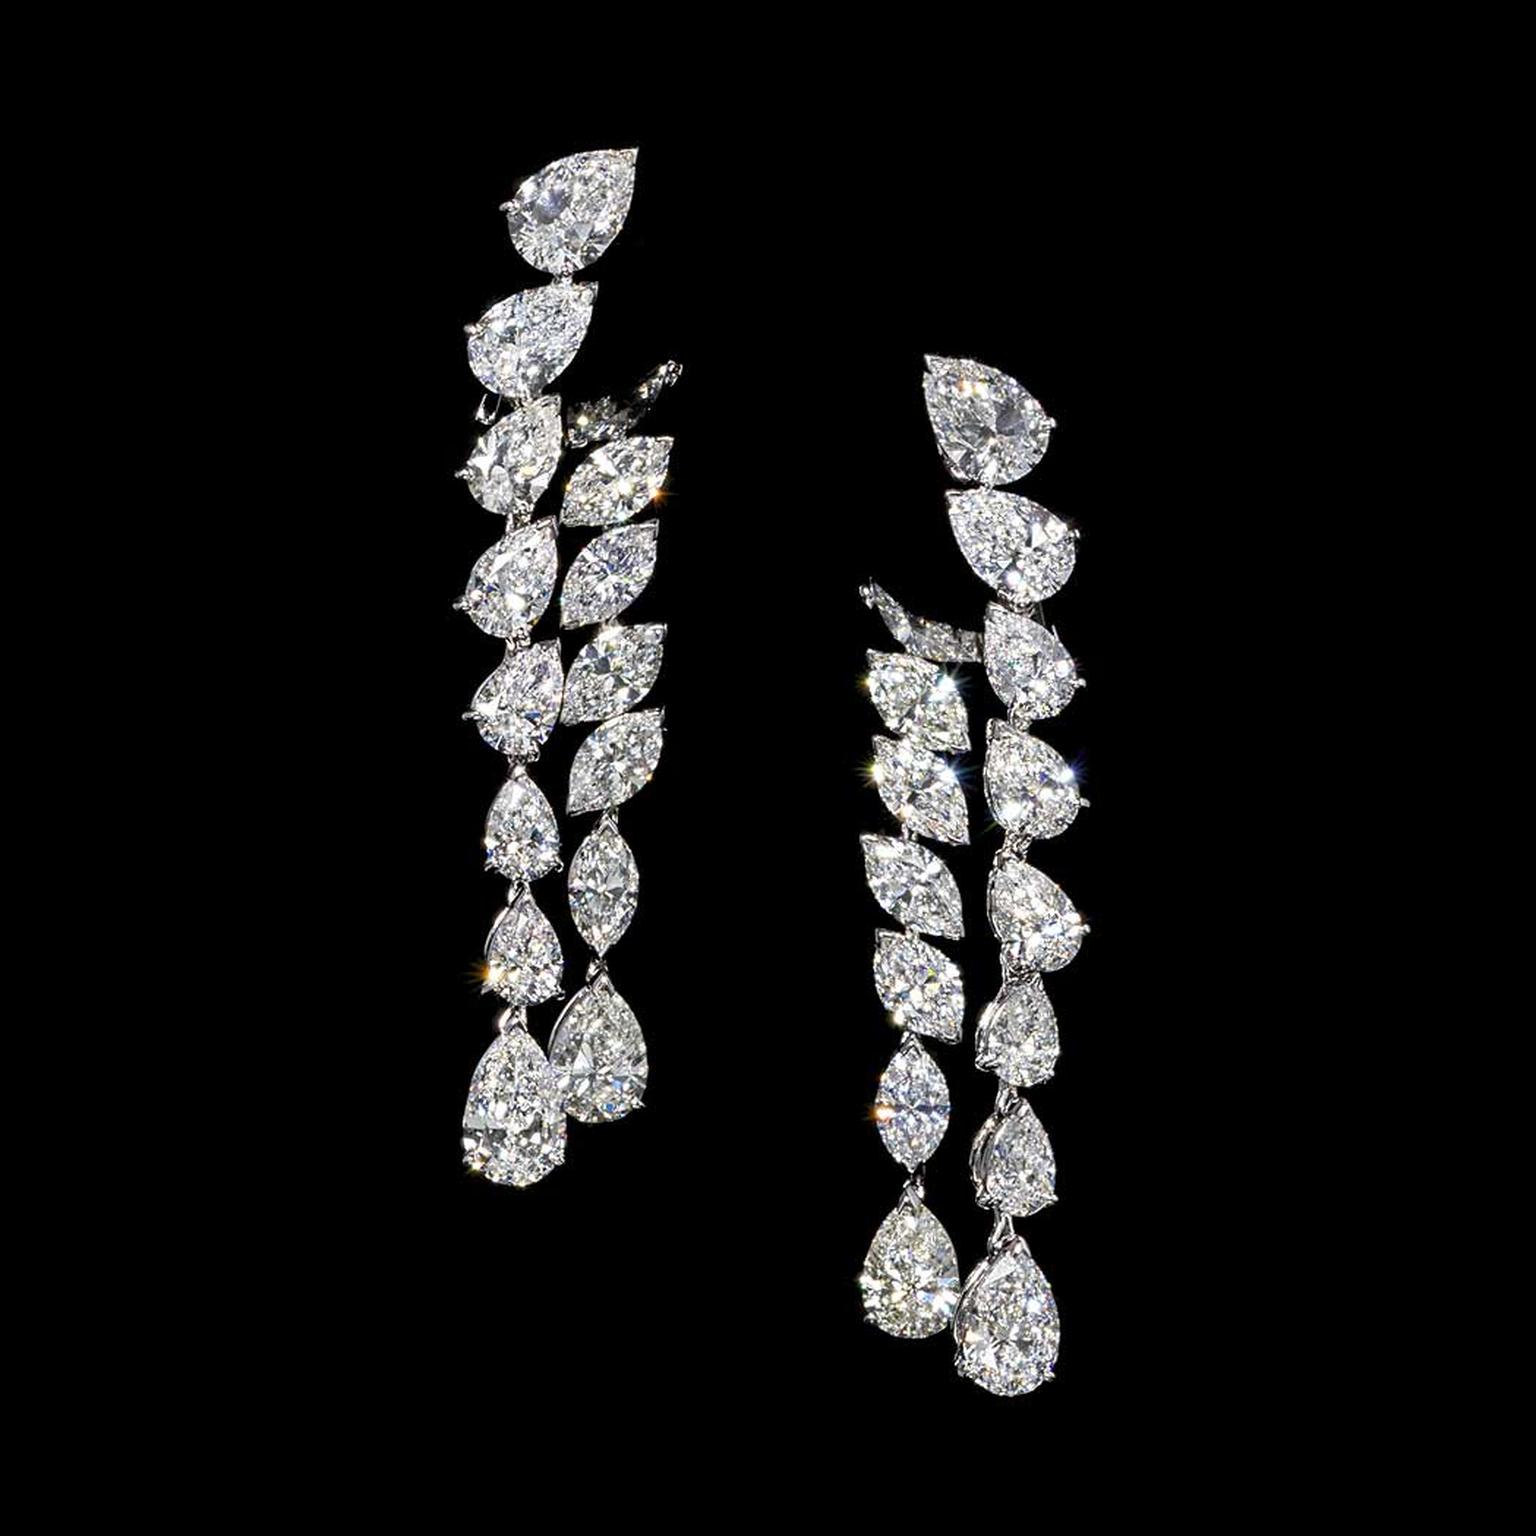 Jahan pear and marquise diamond earrings